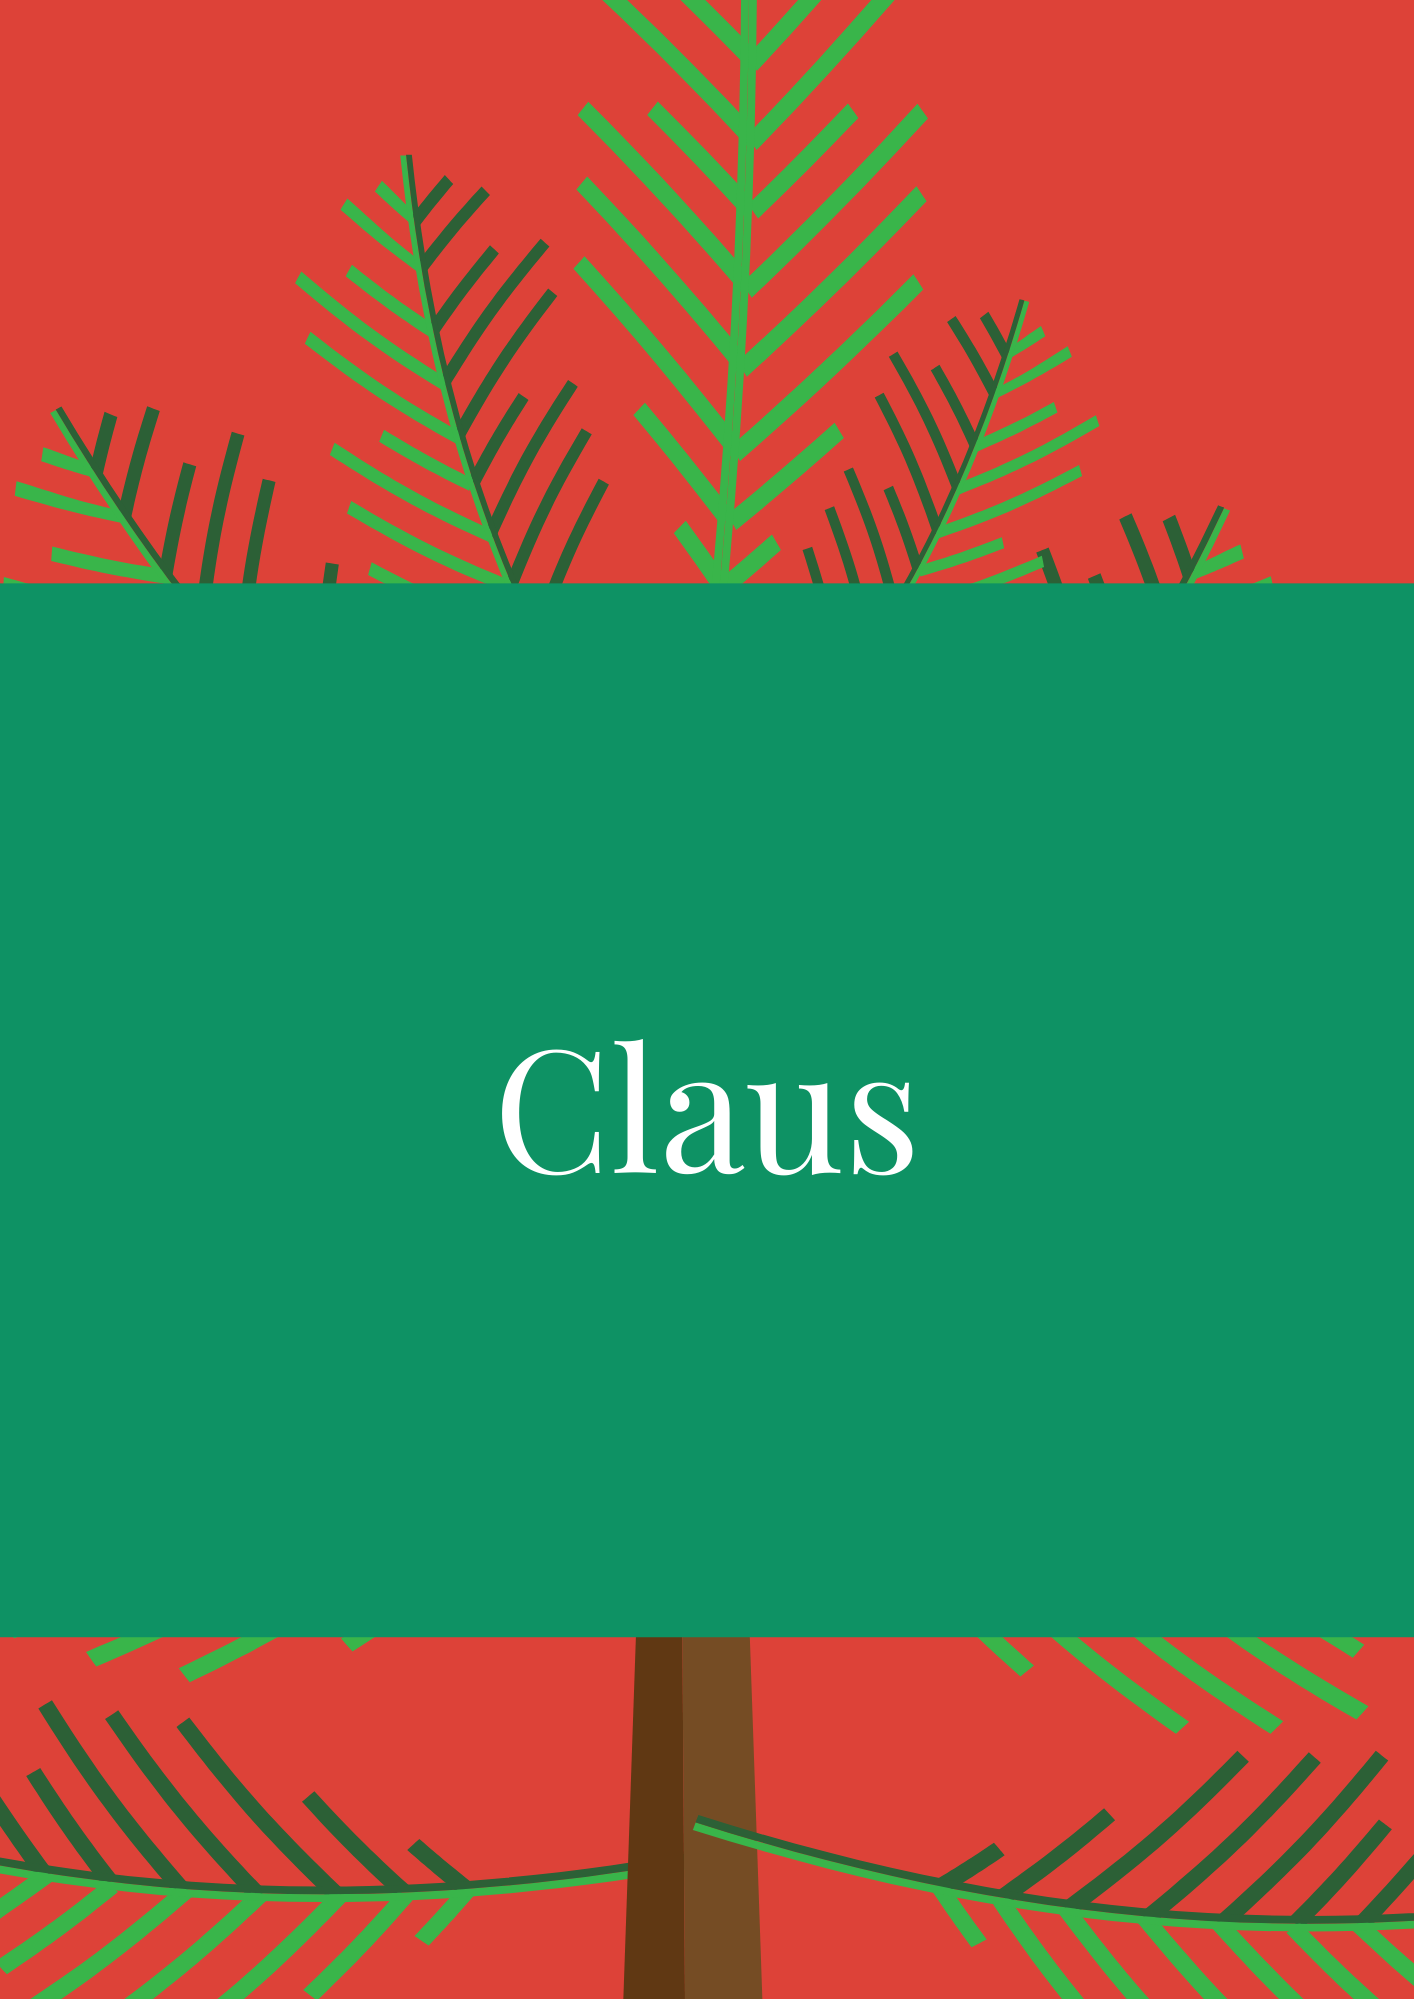 Claus Elf Names